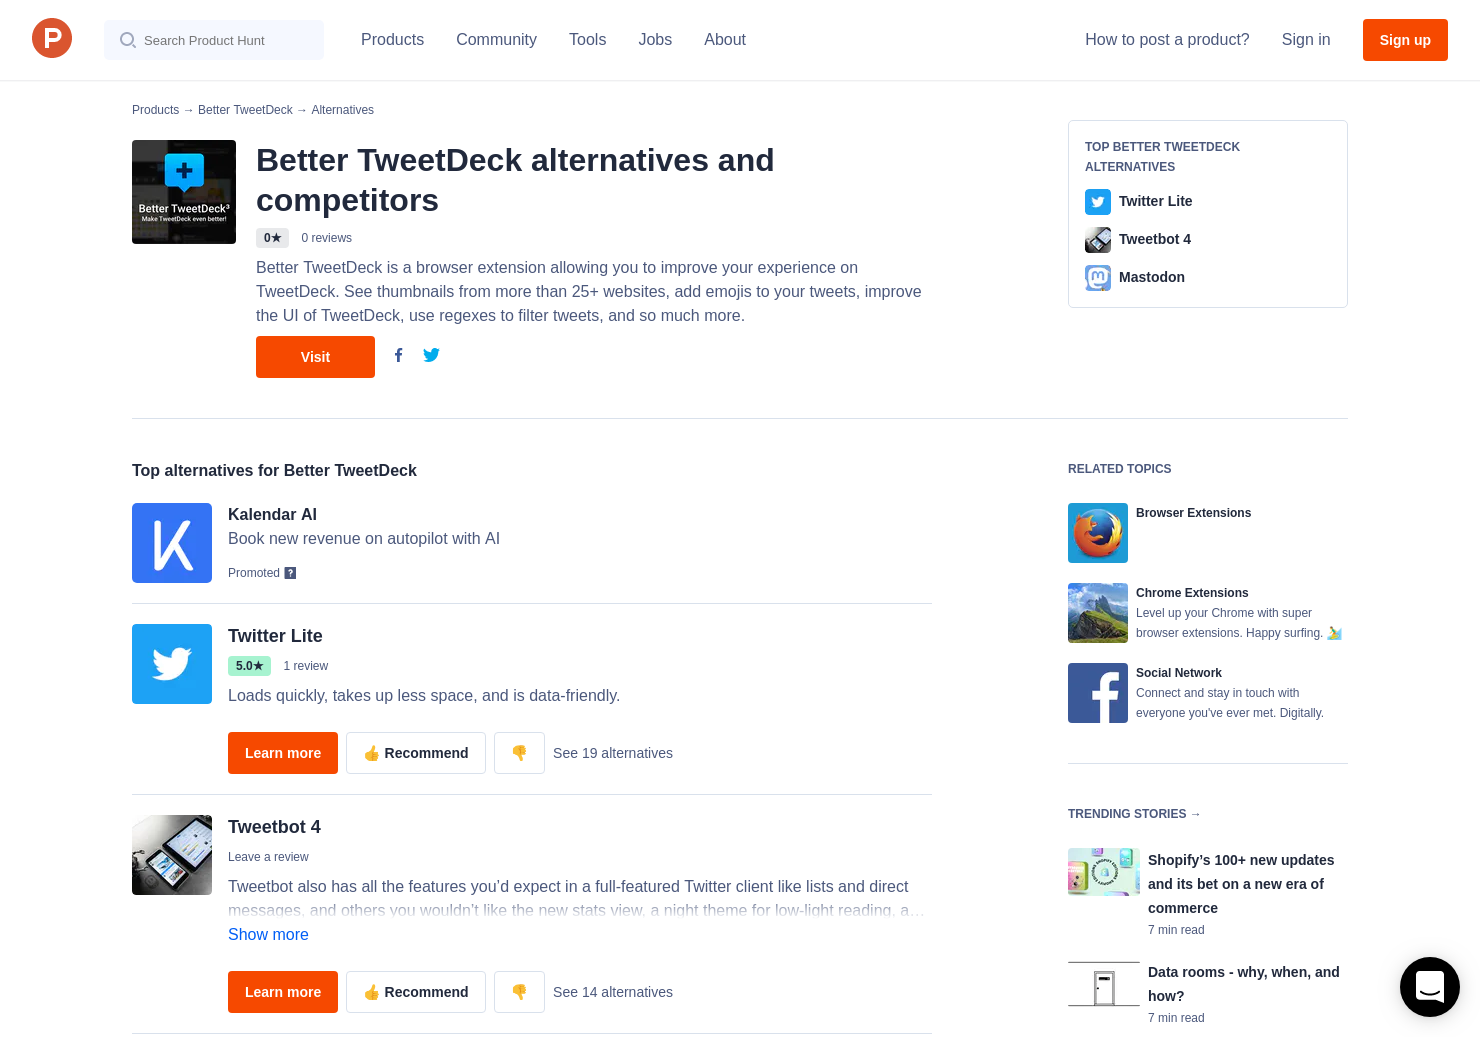 15 Alternatives to Better TweetDeck for Chrome Extensions | Product Hunt